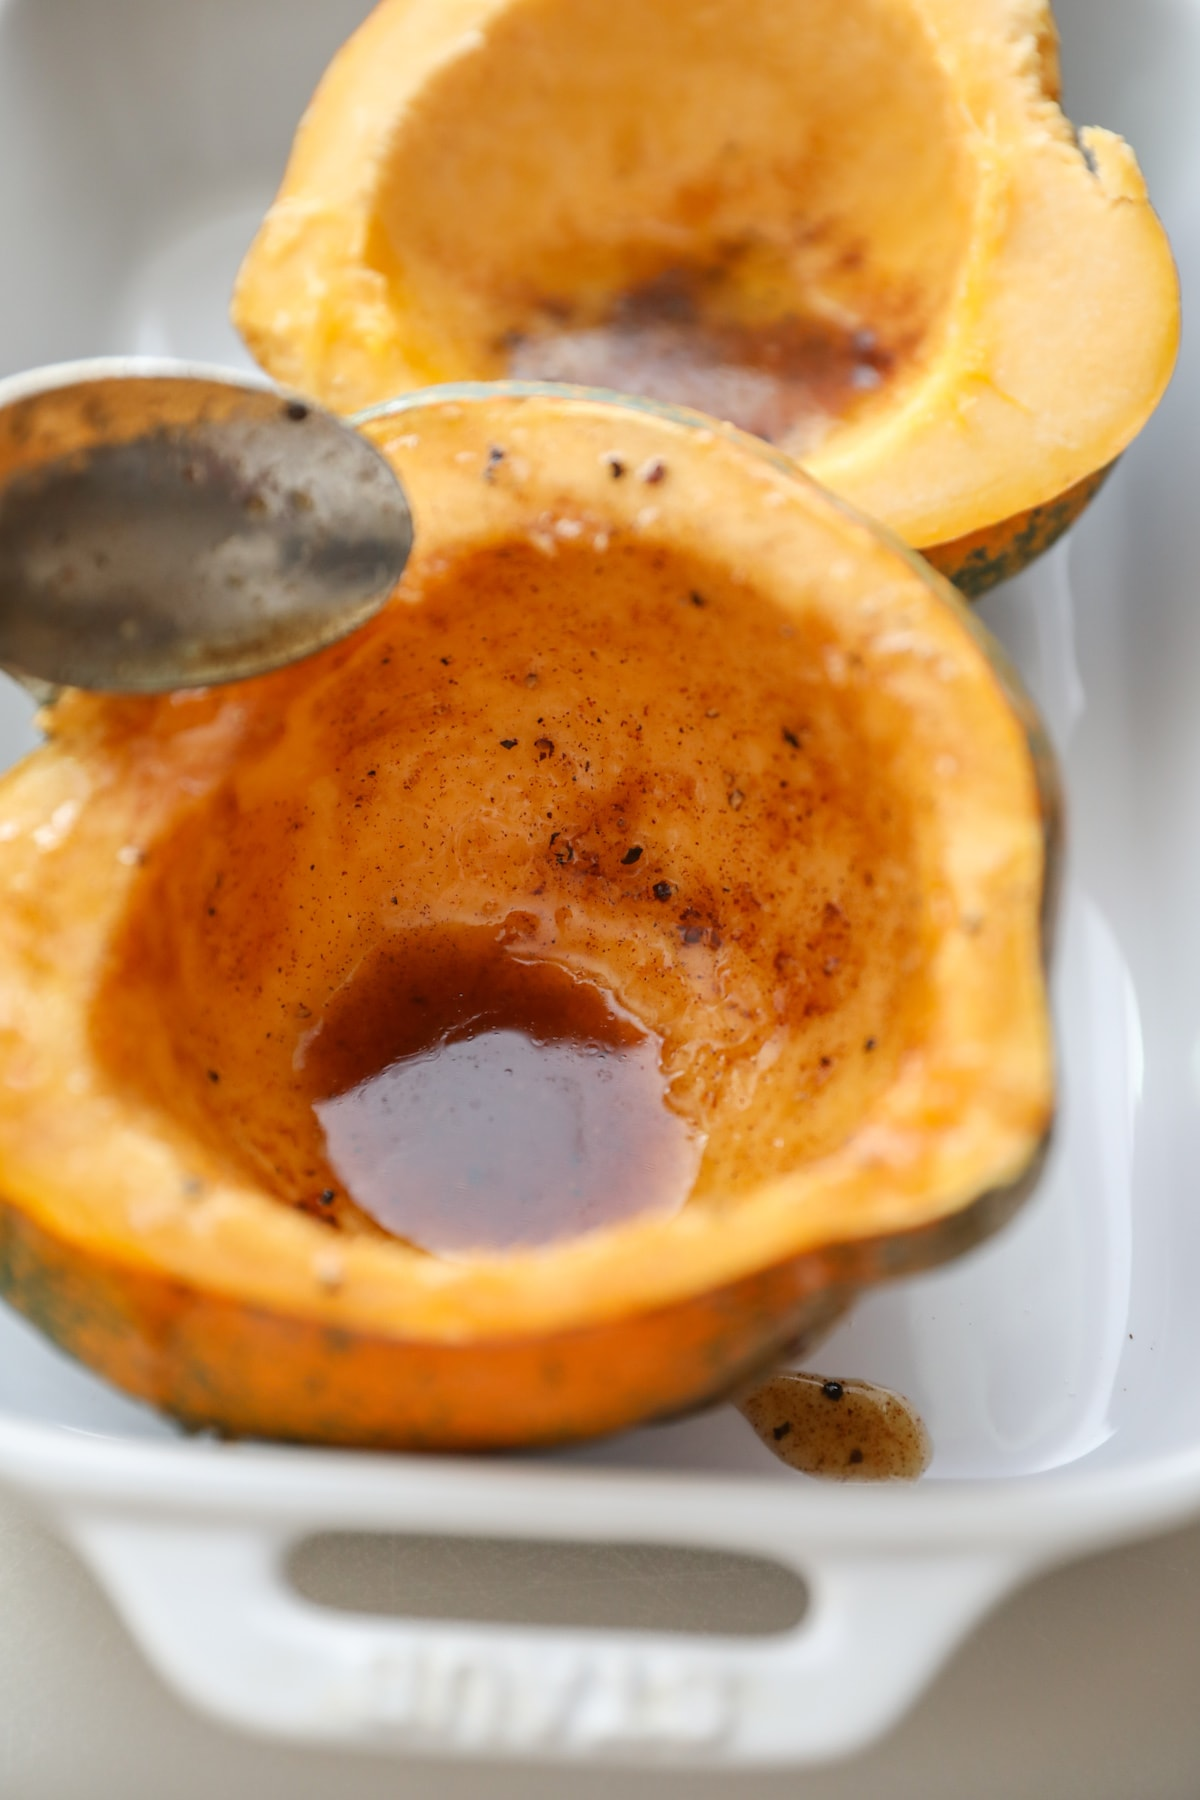 spooning melted butter and maple syrup on acorn squash